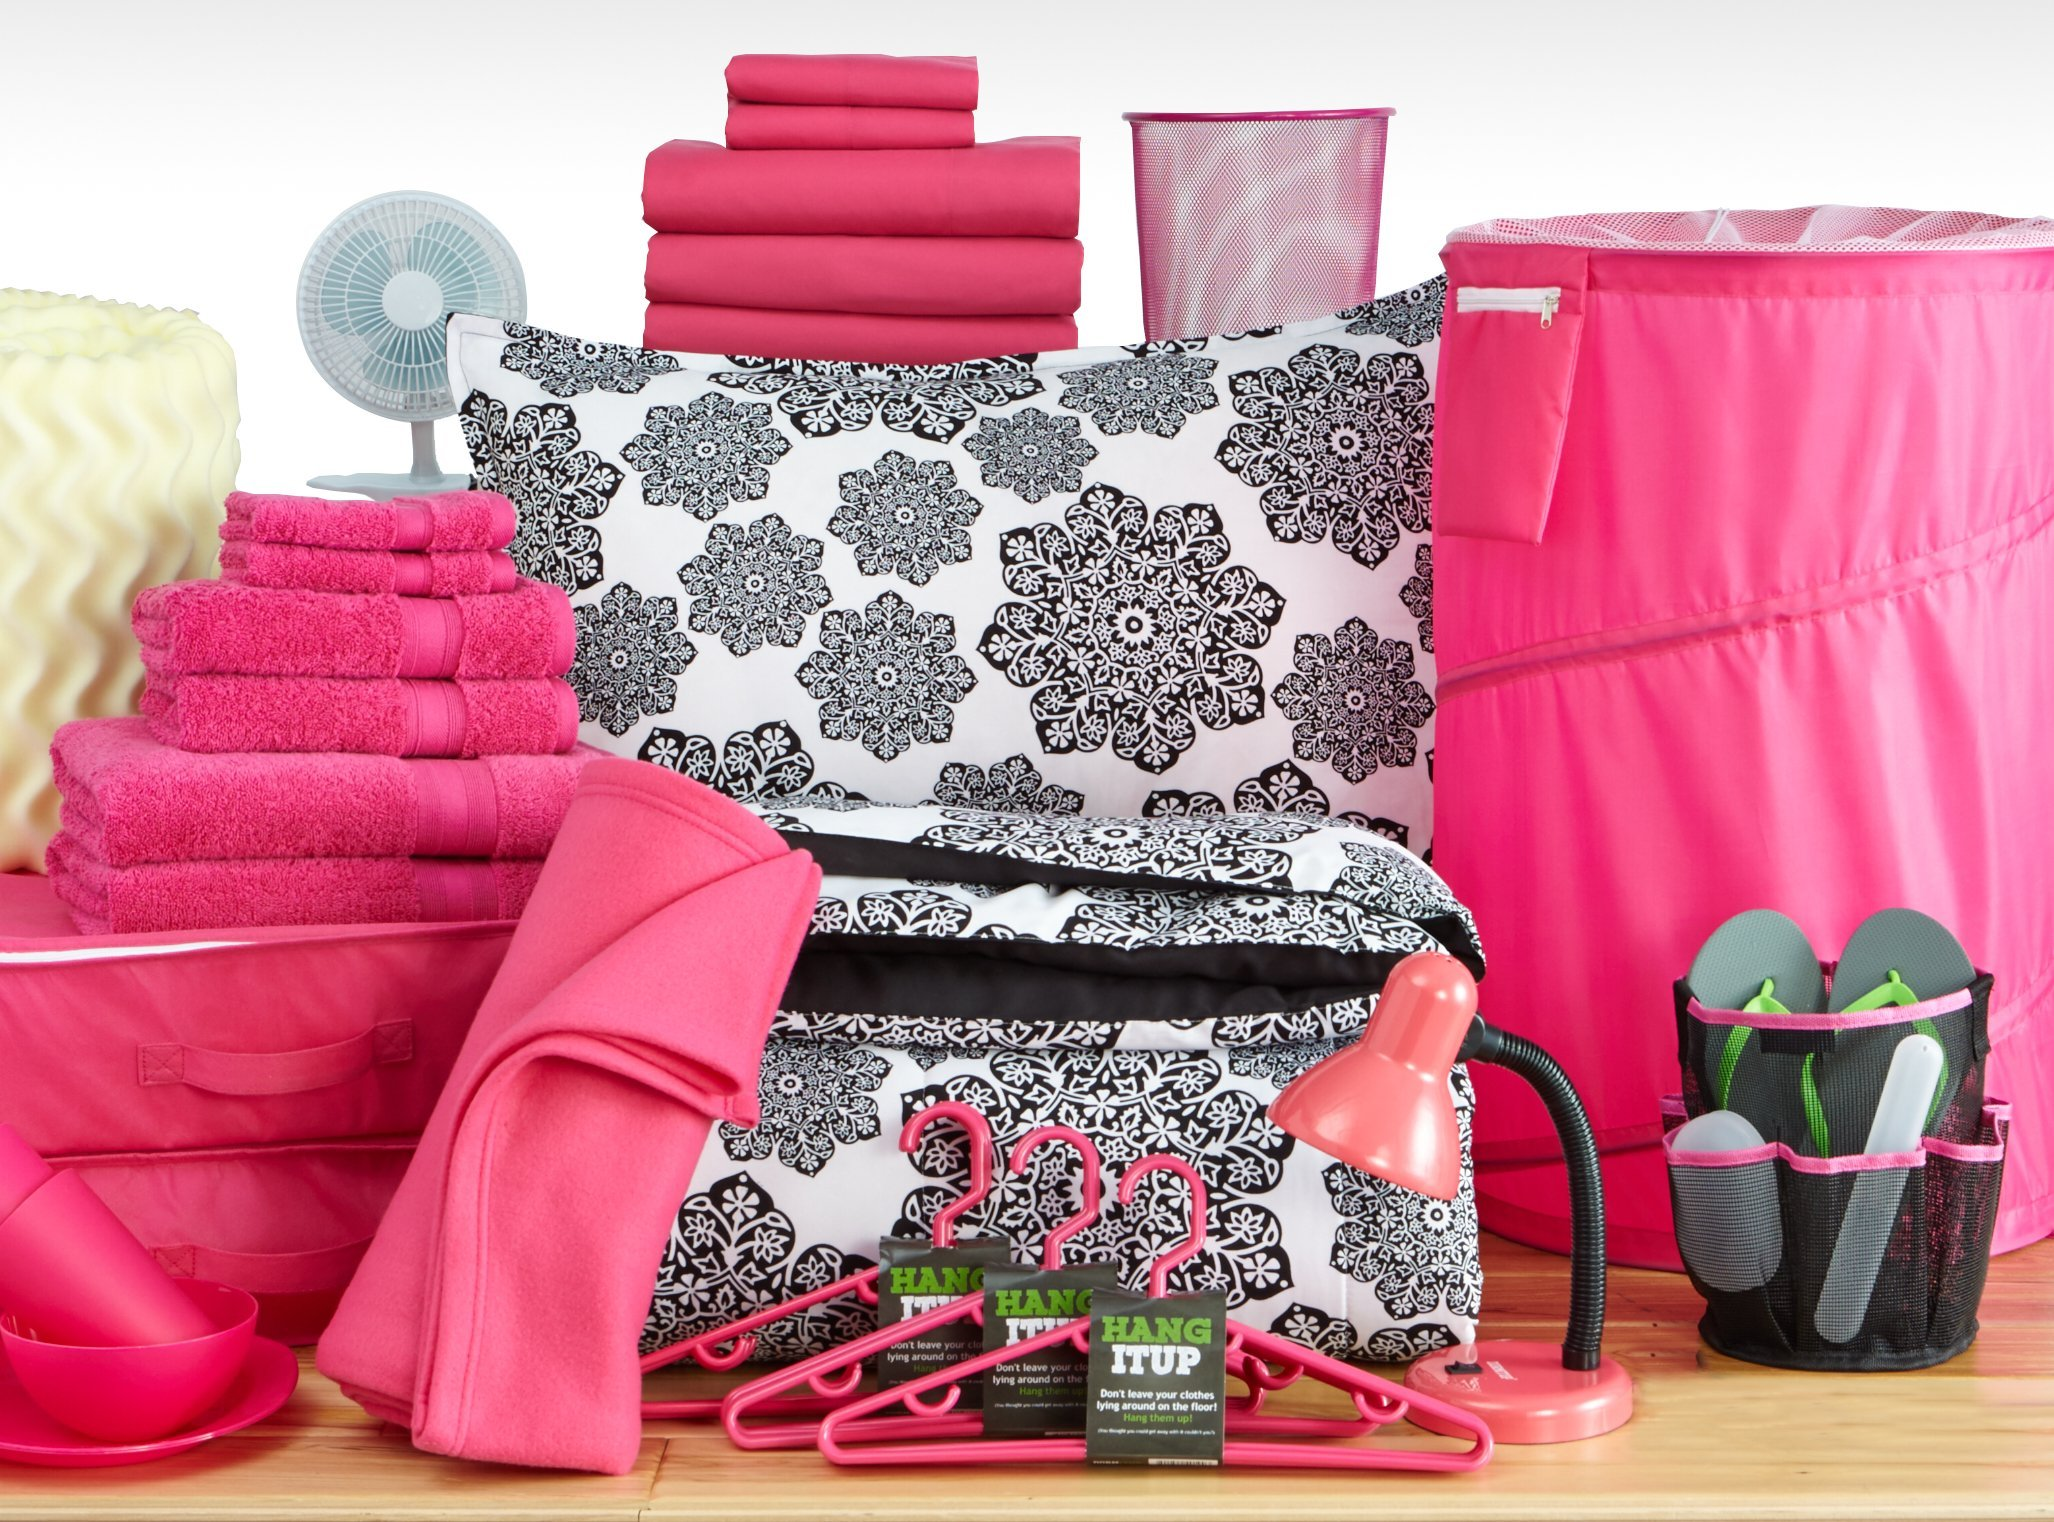 Twin XL College Dorm Room Bedding Sets - All Nighter Pink - The Good Life